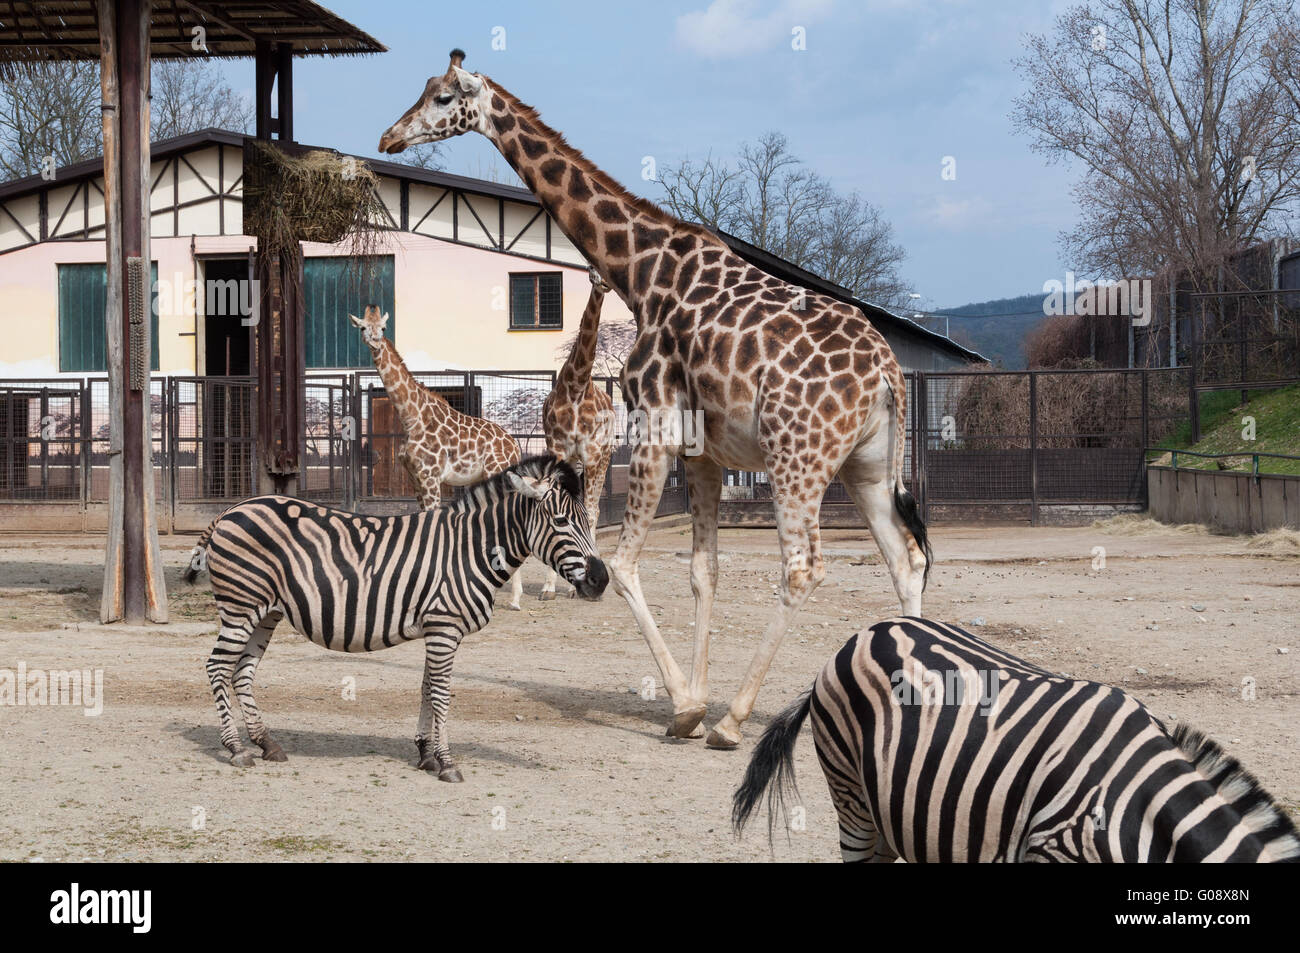 Zebras and Giraffes at the ZOO in Bratislava, Slovakia - Stock Image